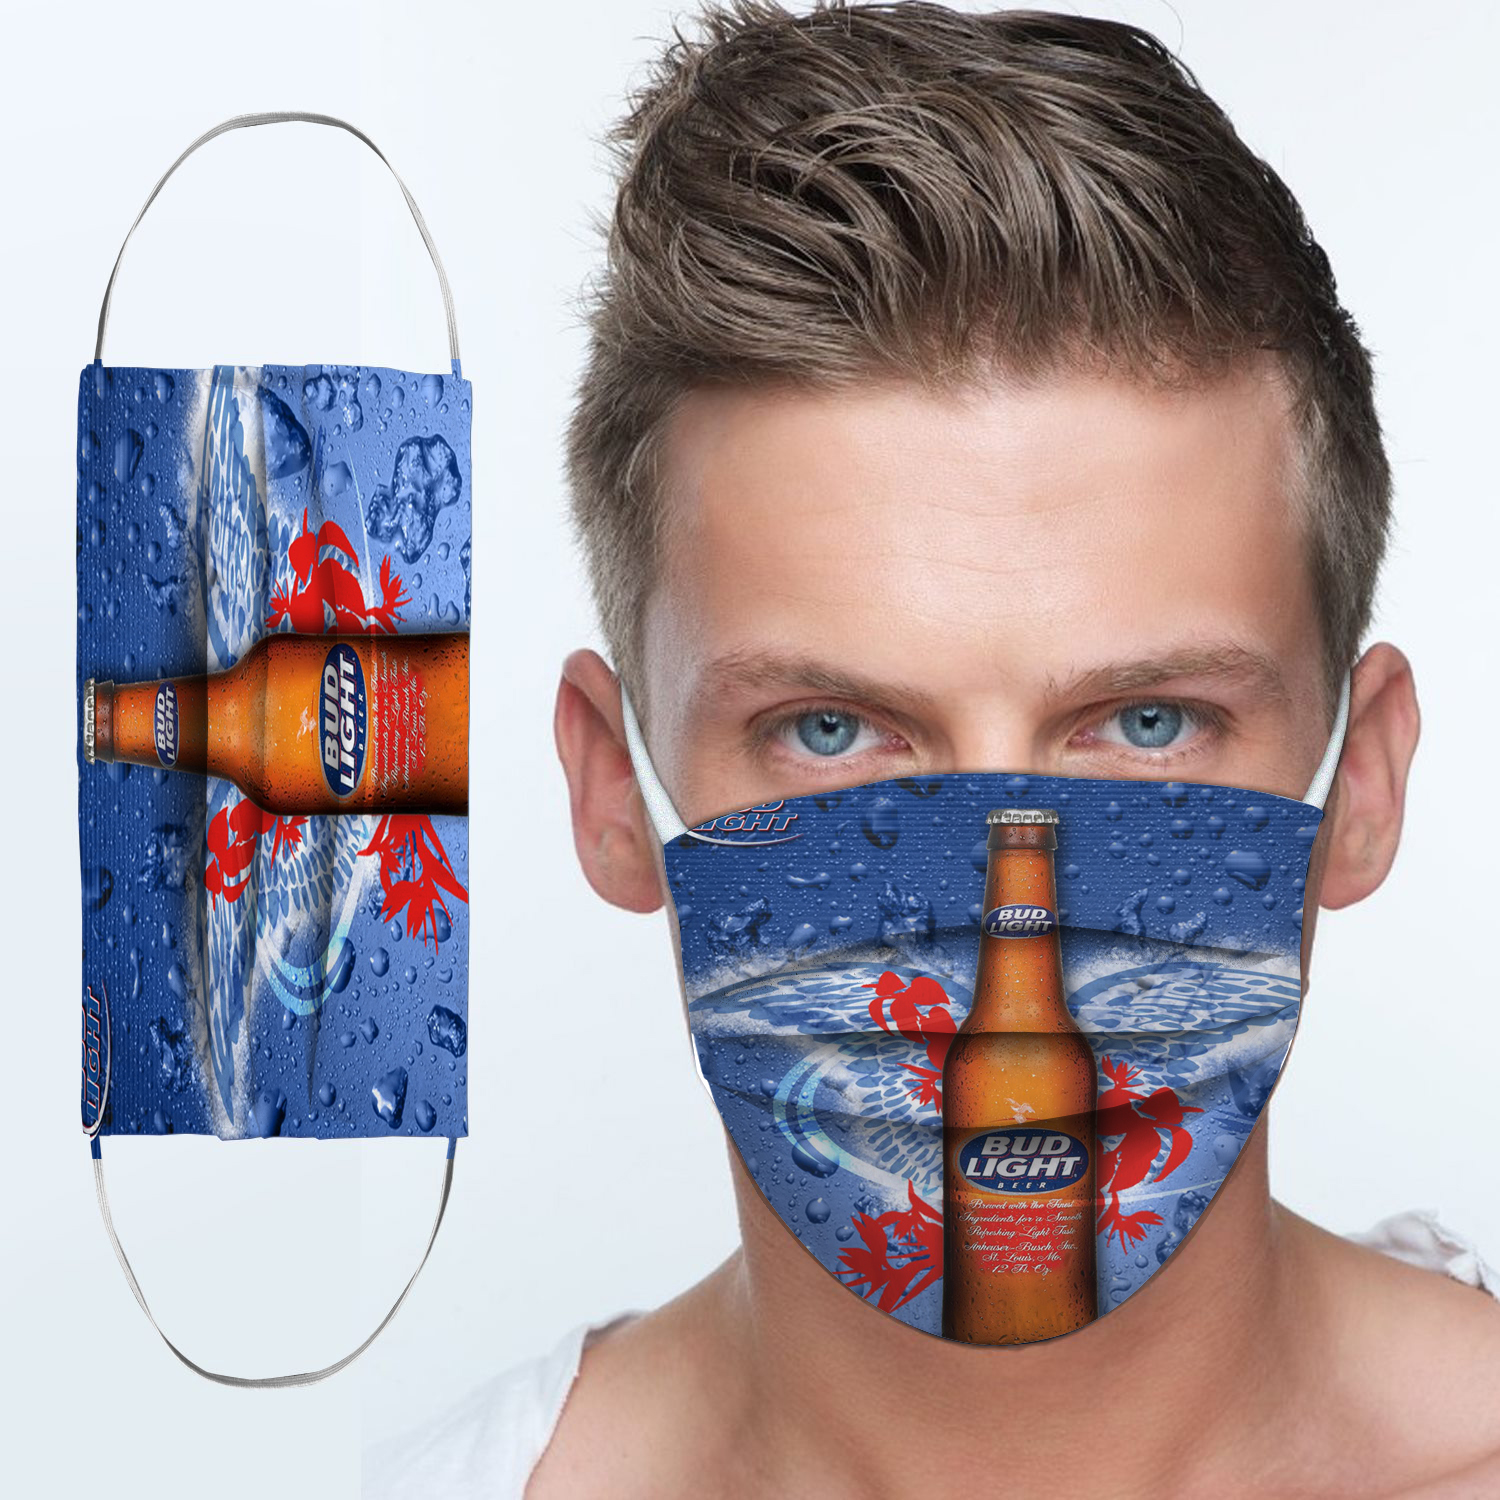 Bud light best light anti-dust cotton face mask 3